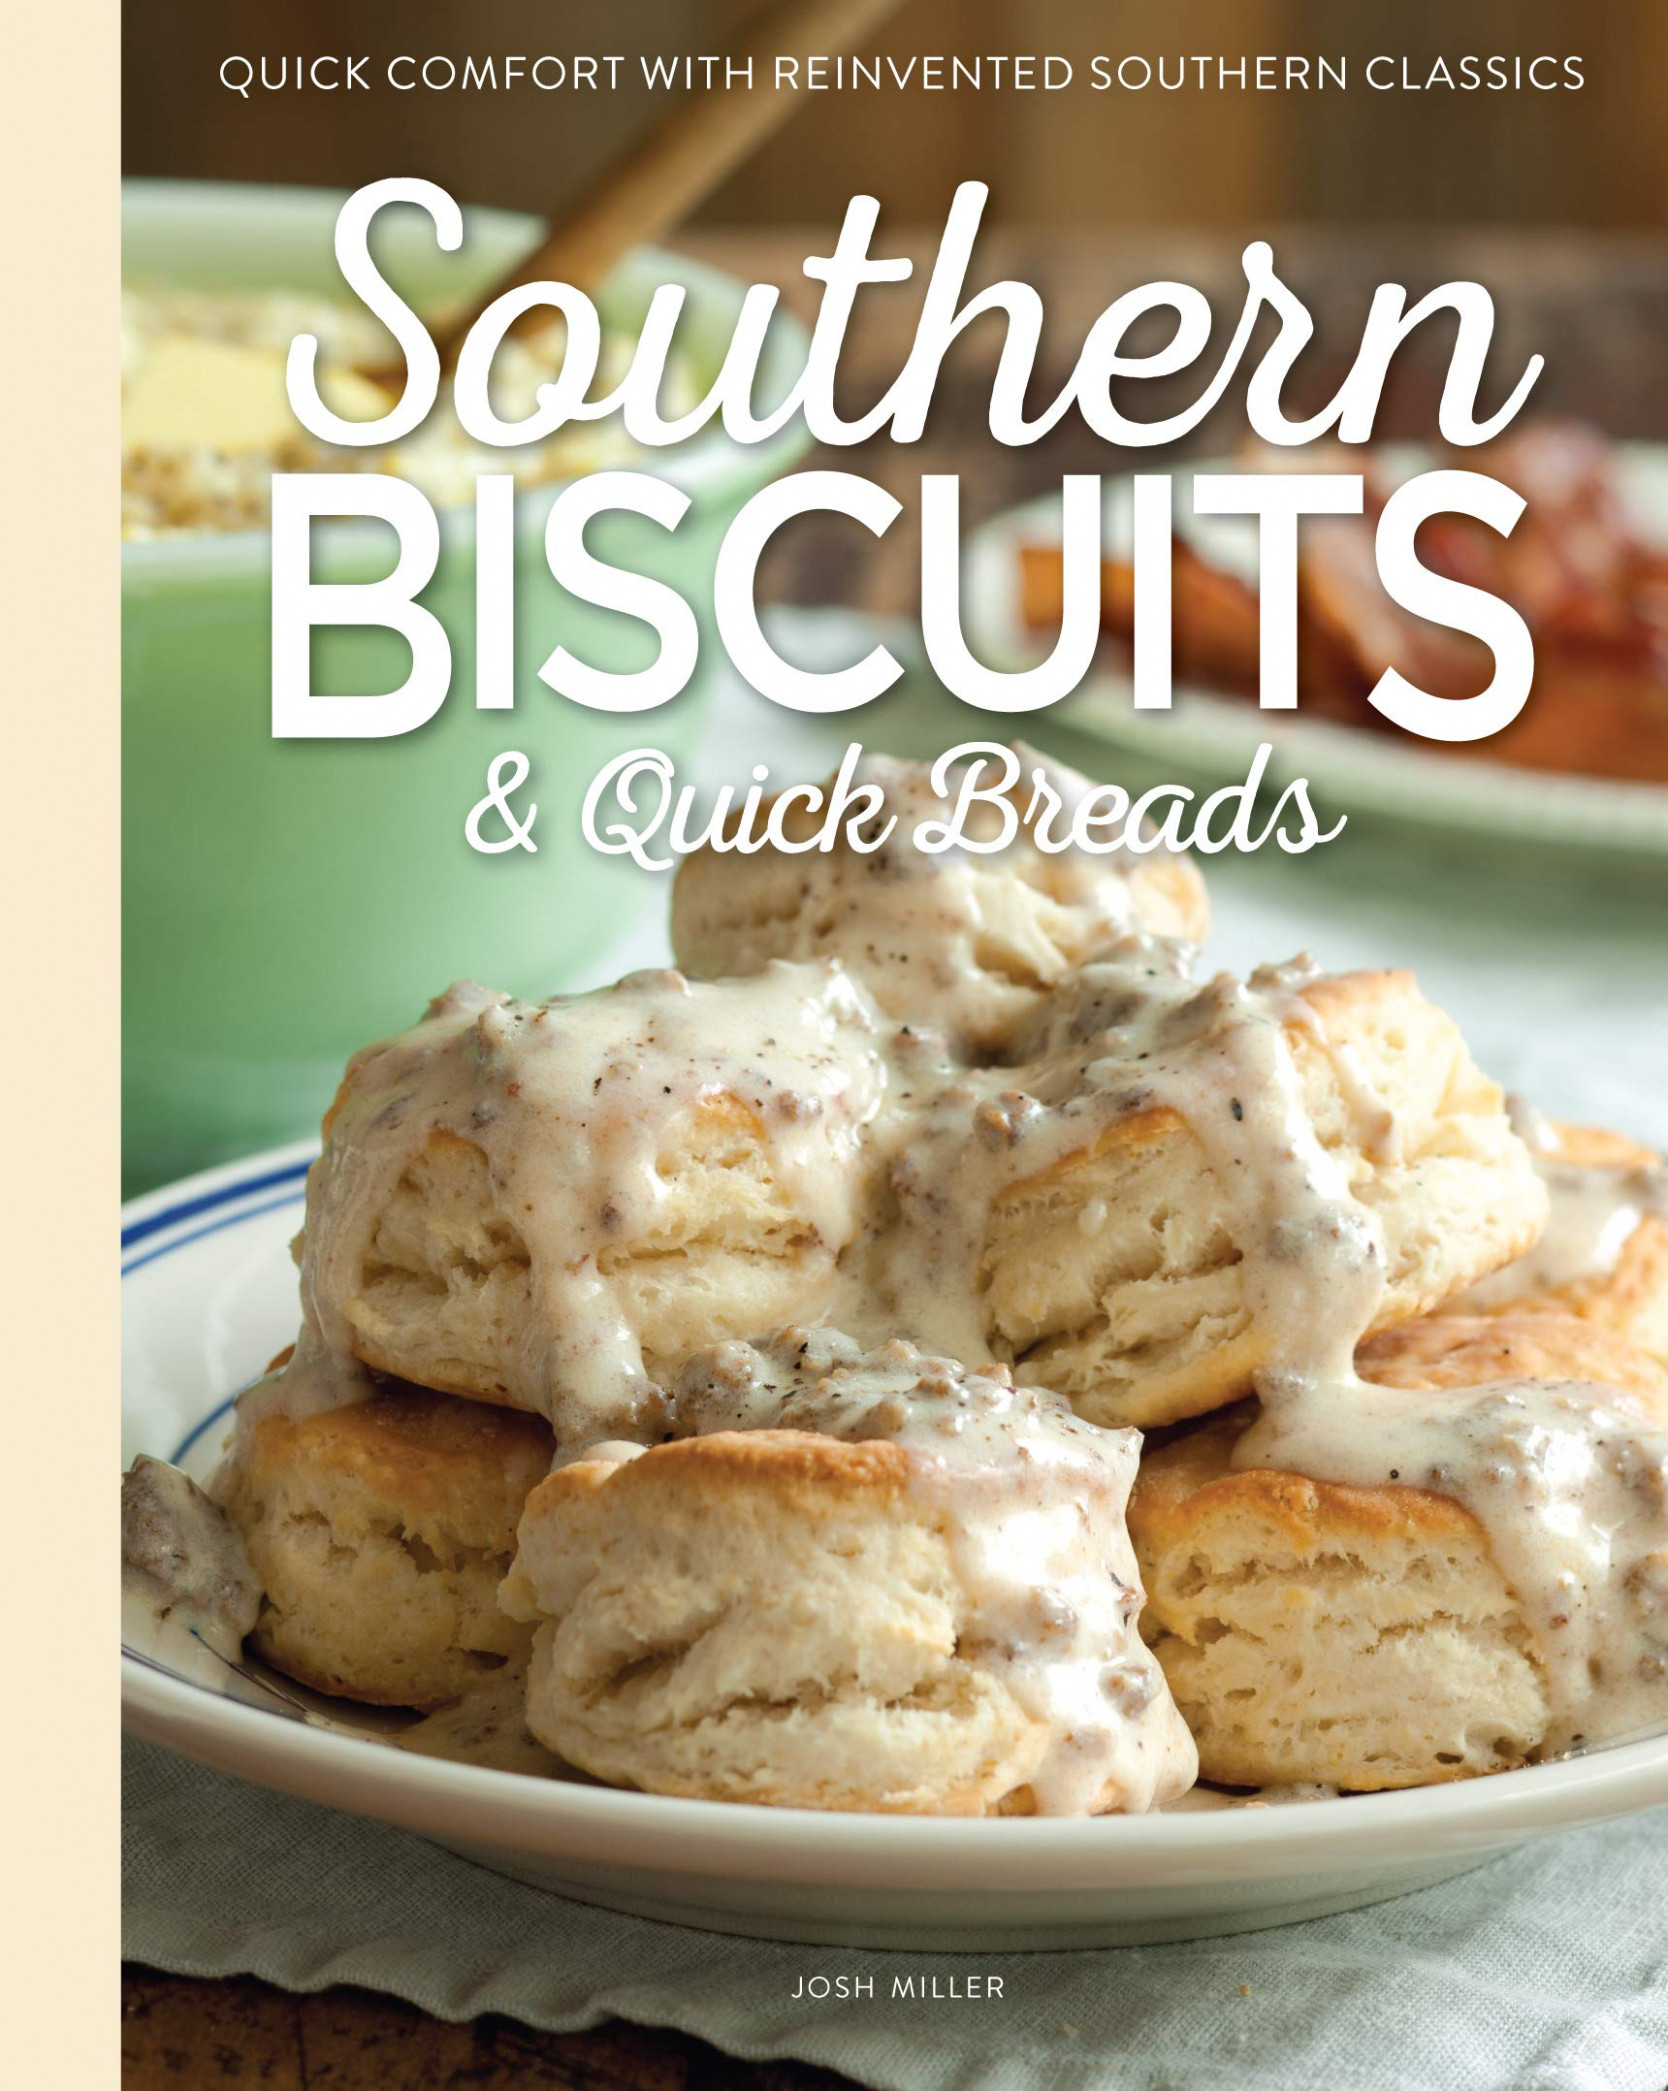 Southern Biscuits & Quick Breads: Quick Comfort with ..